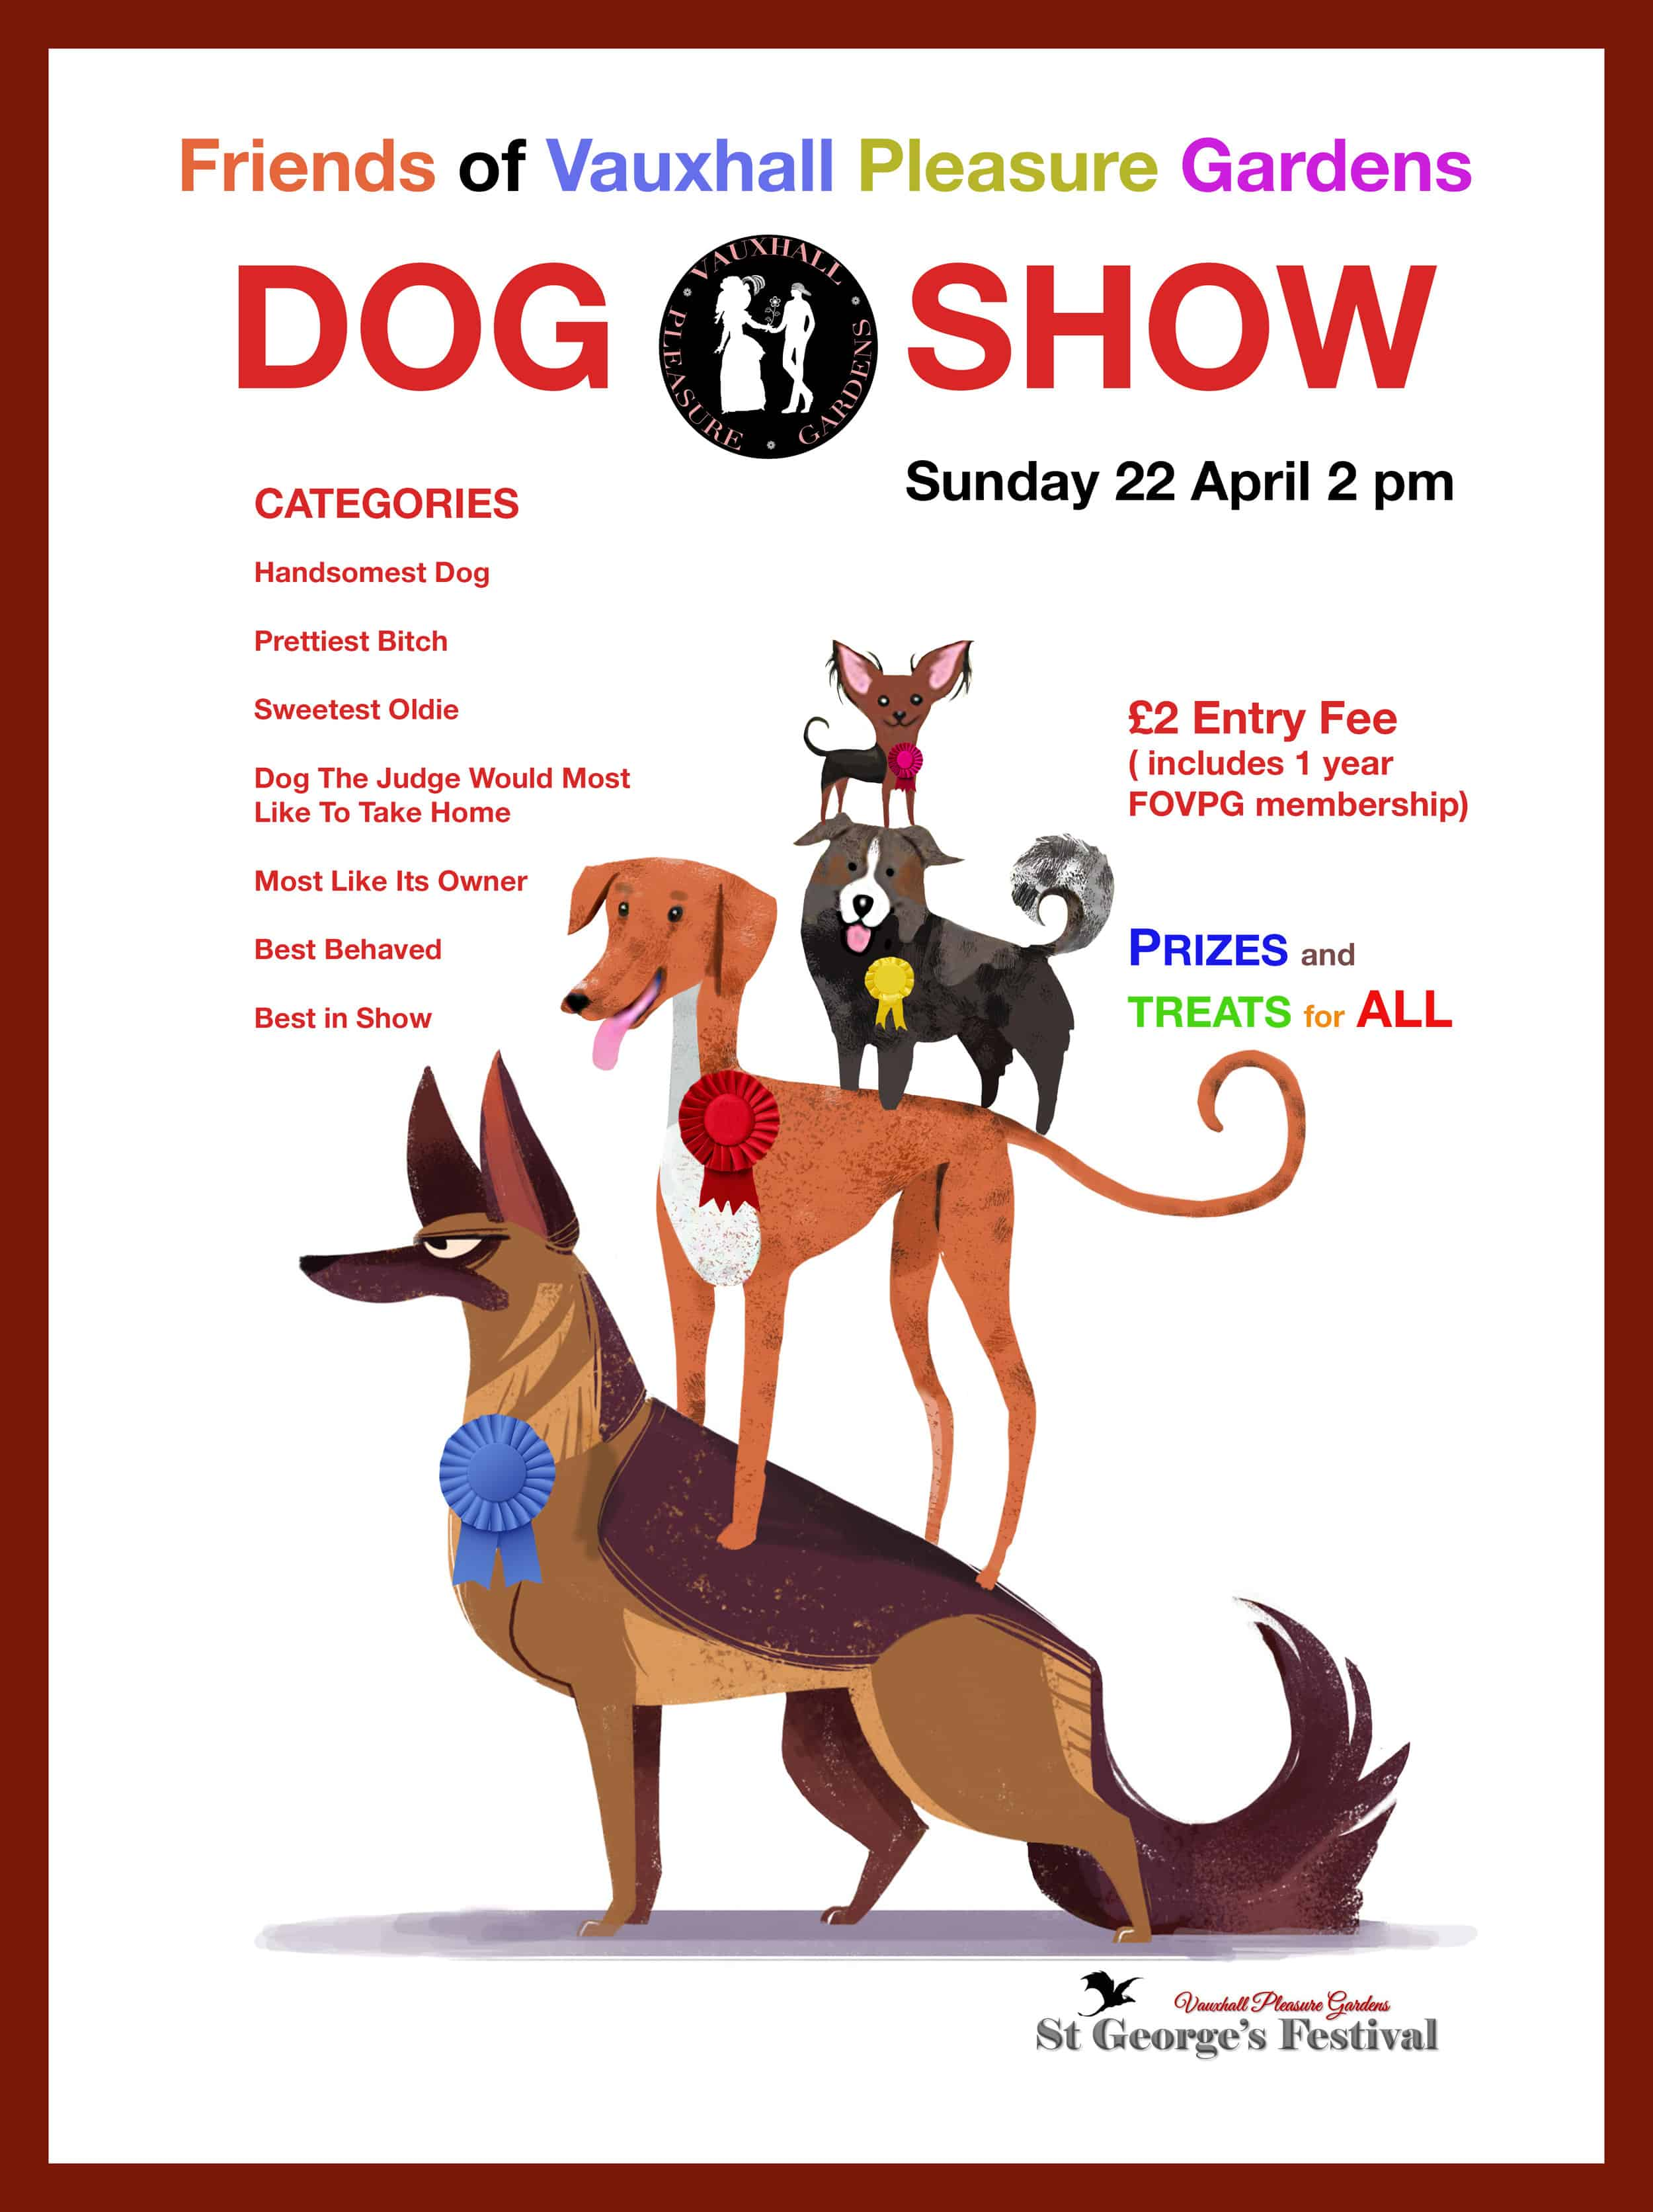 London Dog Shows - Friends of Vauxhall Pleasure Gardens Dog Show 2018 Poster